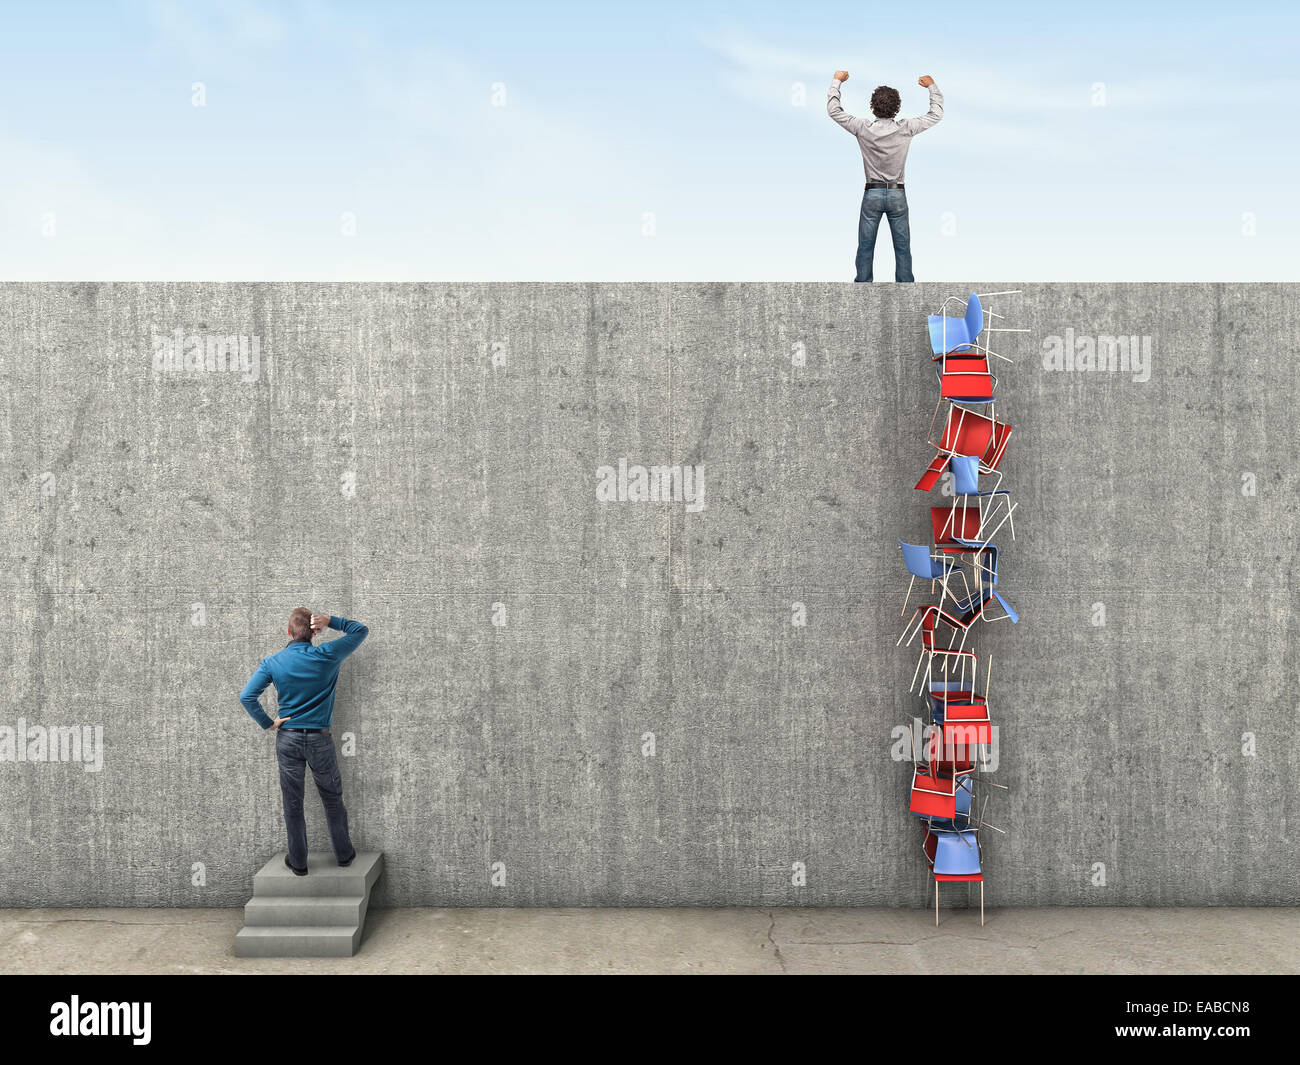 high wall and clever solution 3d image - Stock Image